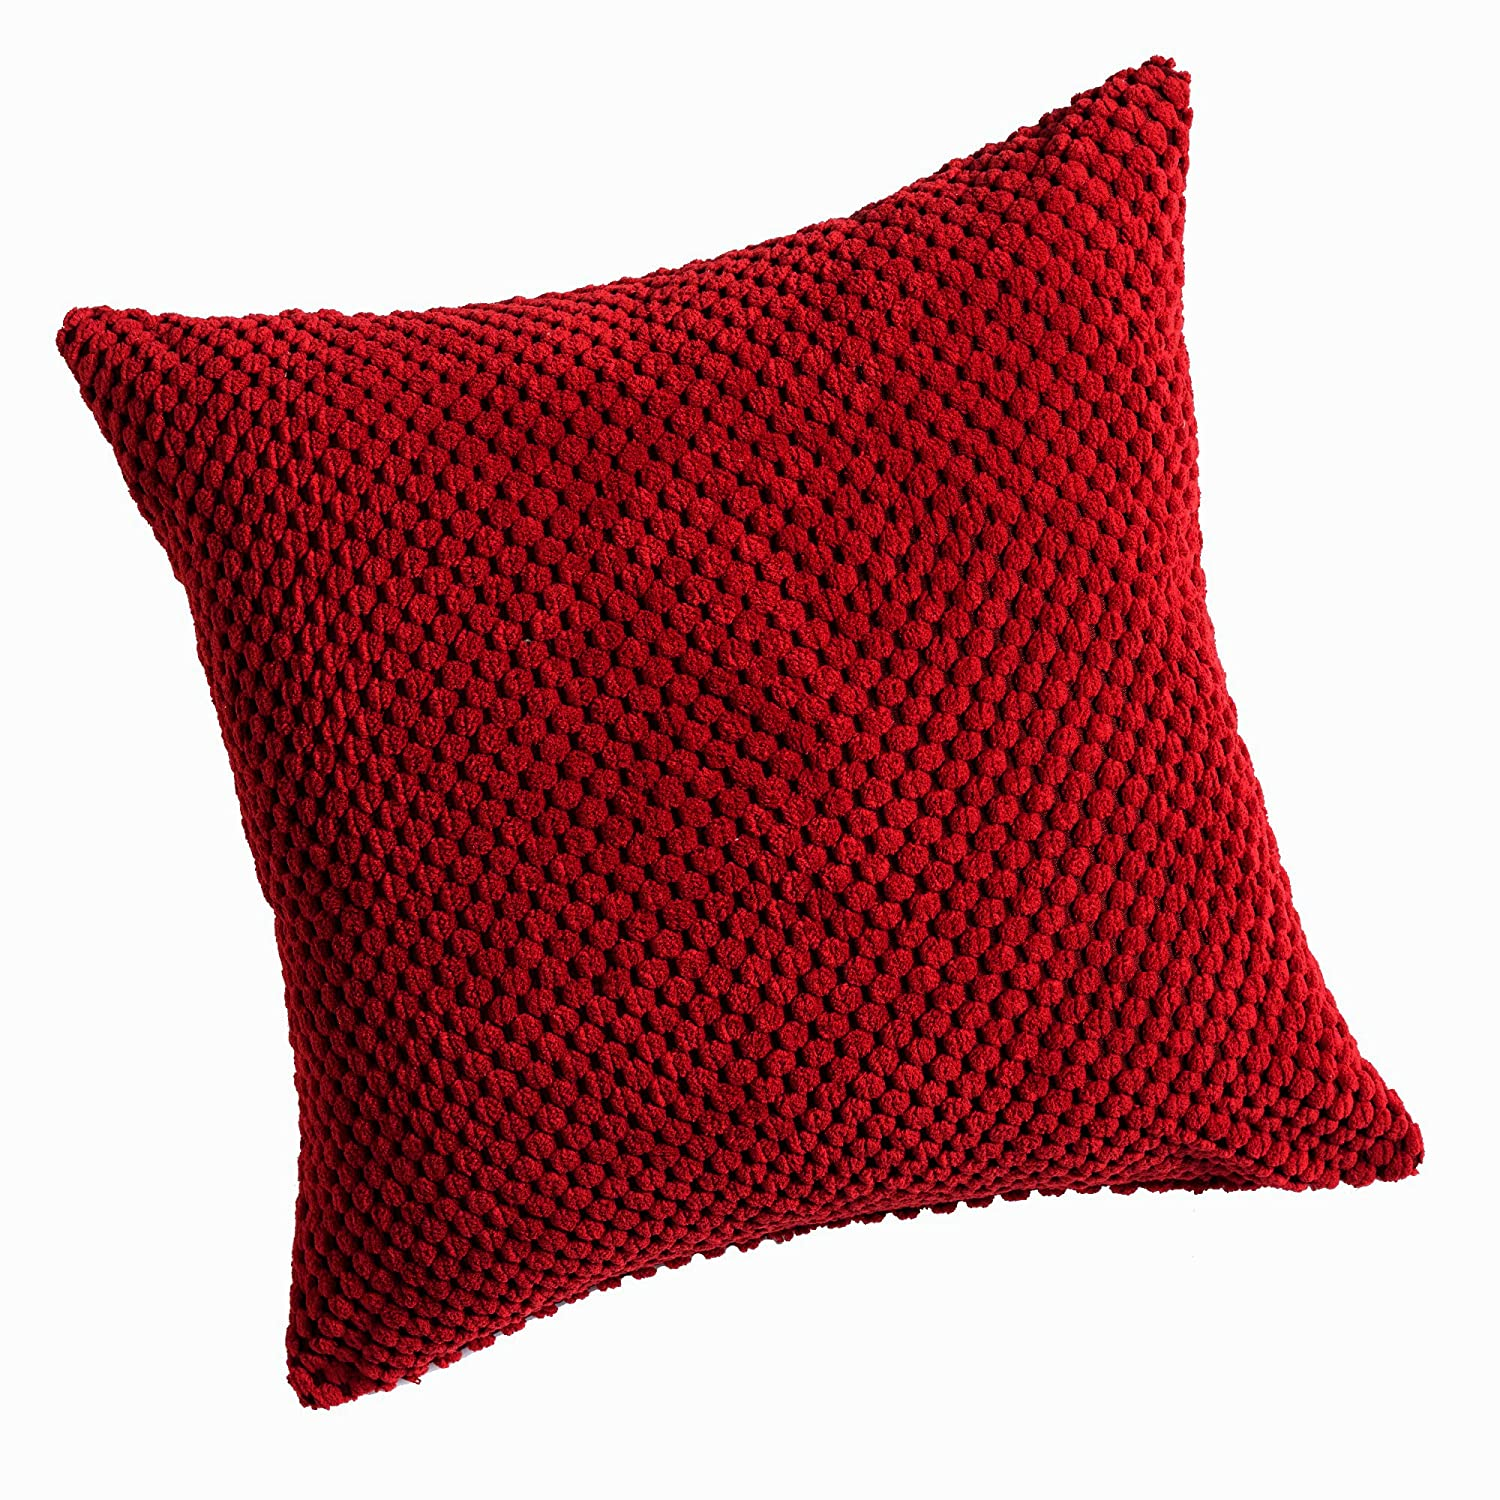 cover red pillow cotton plain group scatter cushion homescapes